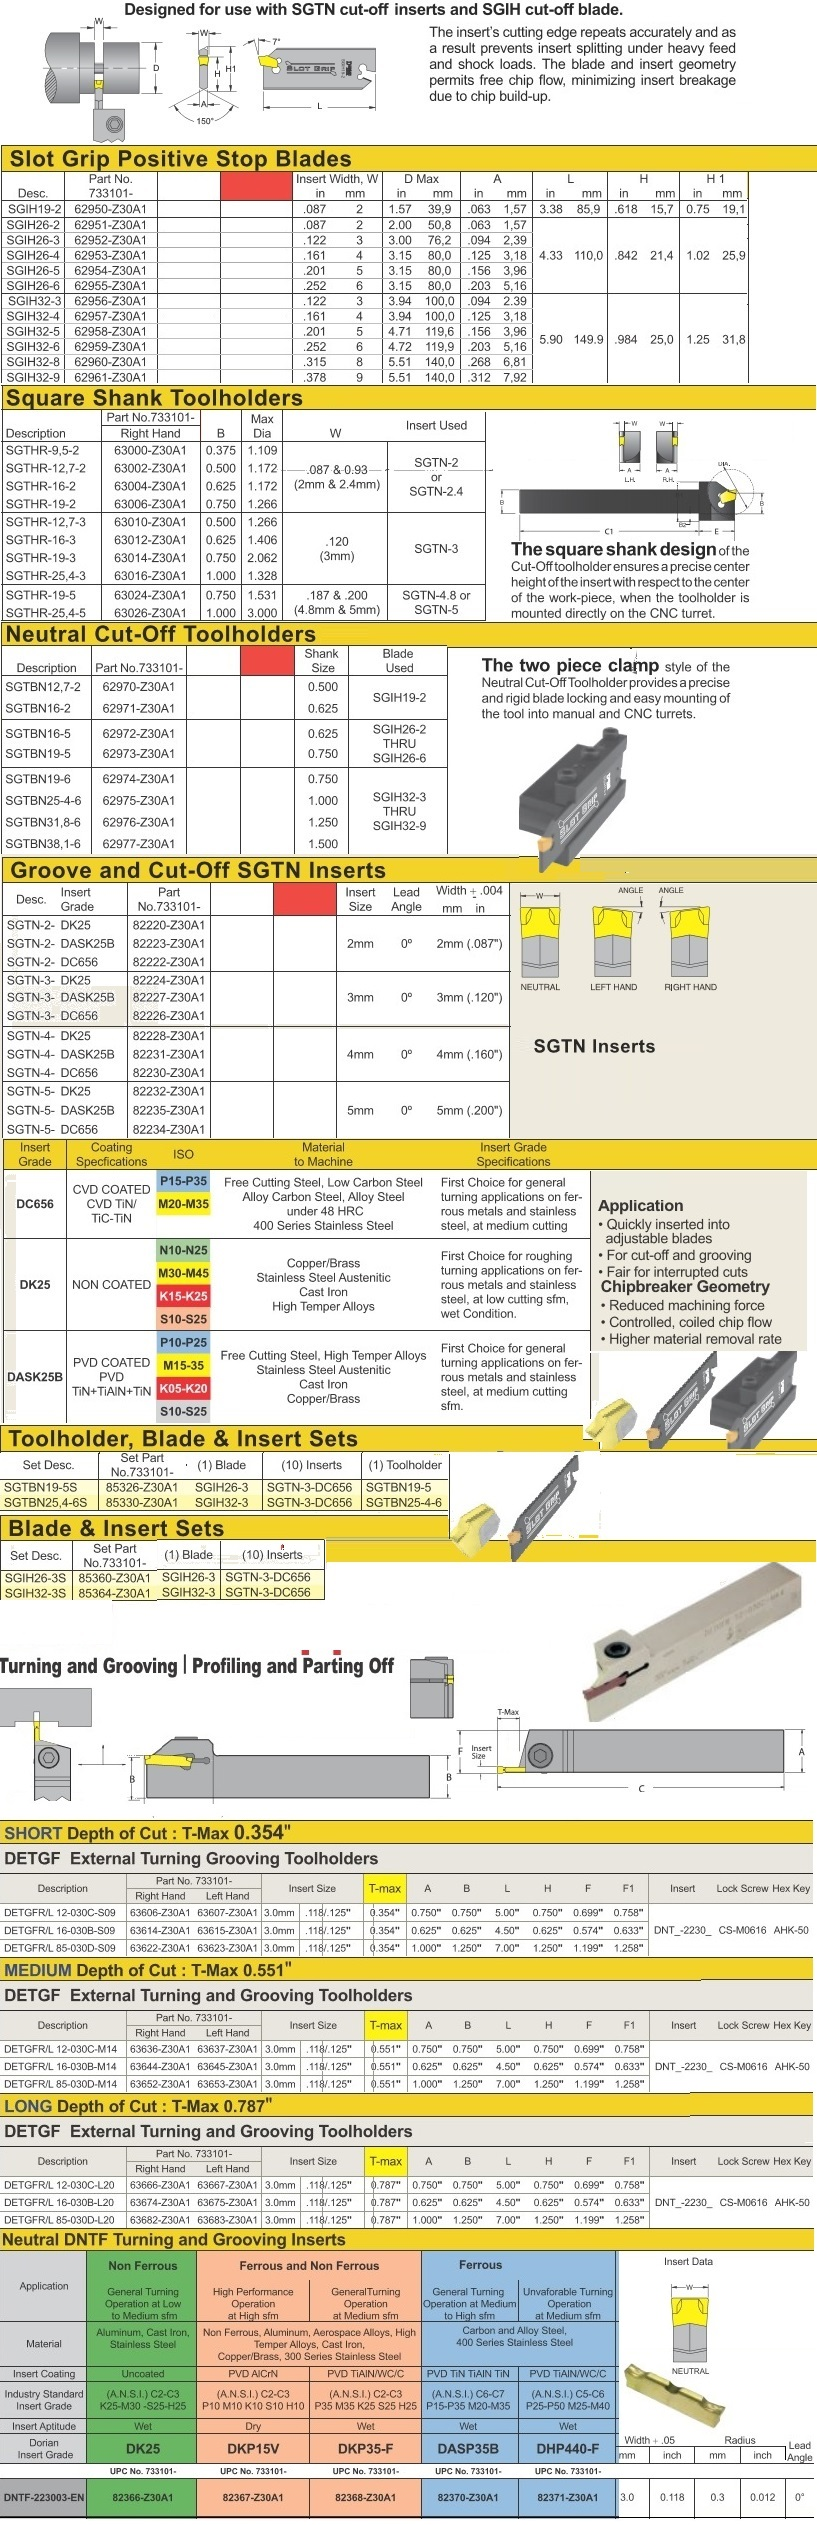 Grooving Part Off Profiling Carbide Inserts, Holders SGIH,SGTHR,SGTBN,SGTN ID 902-